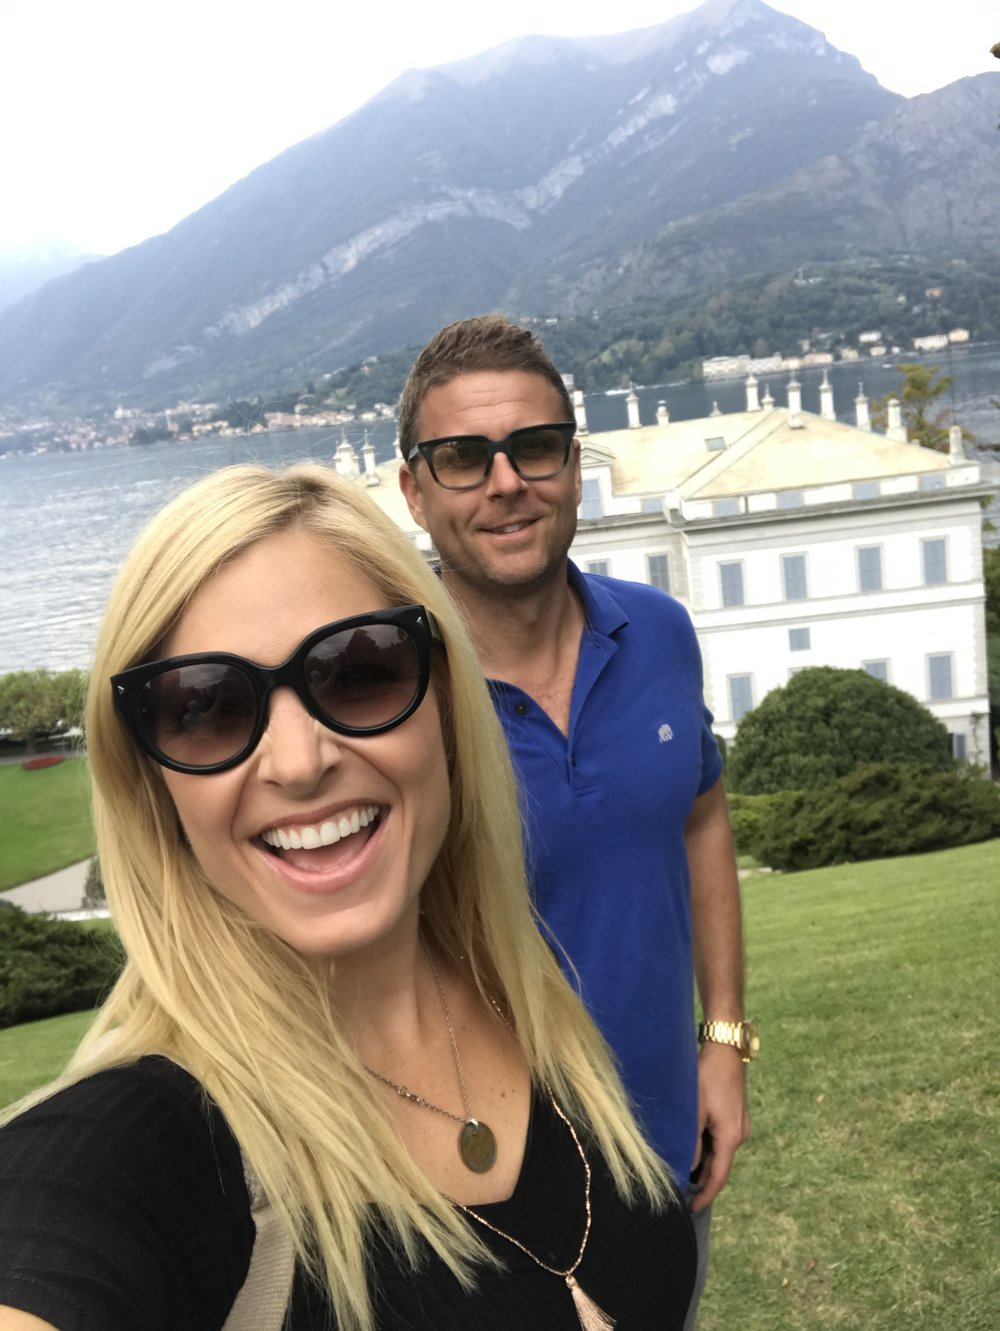 Anna Kooiman annakooiman.com fitness travel lifestyle television fashion adventure italy lake como bellagio duomo northern italy swiss alps piedmont ferry captain boat cobblestone streets elegant restaurants terrace gardens